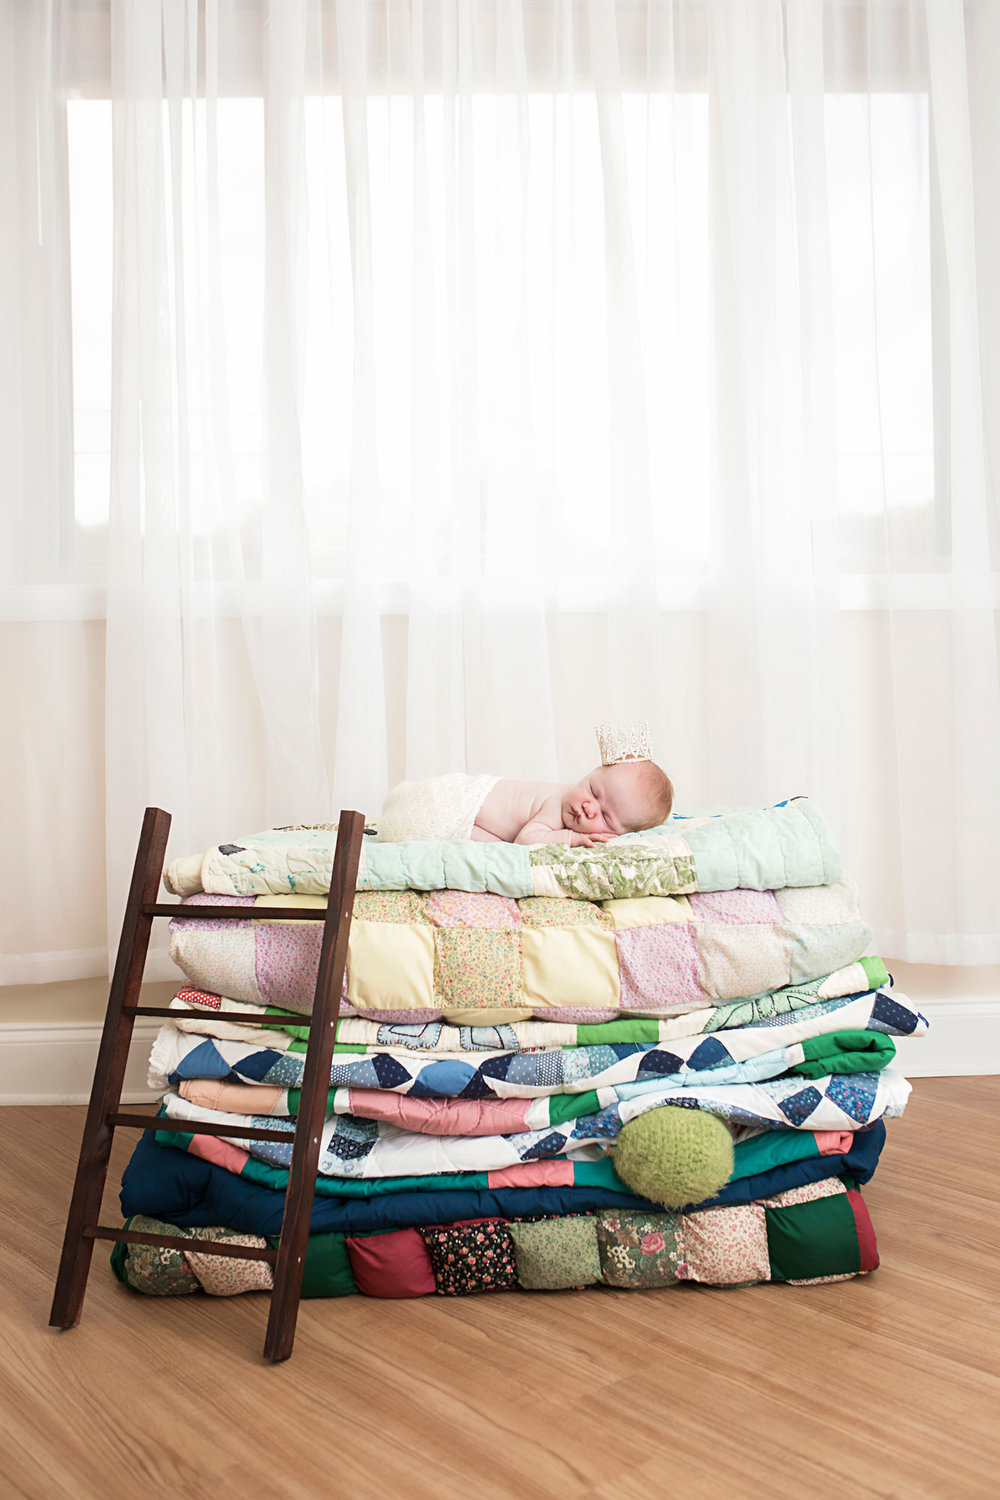 knoxville-princess-and-the-epea-newborn-session.jpg